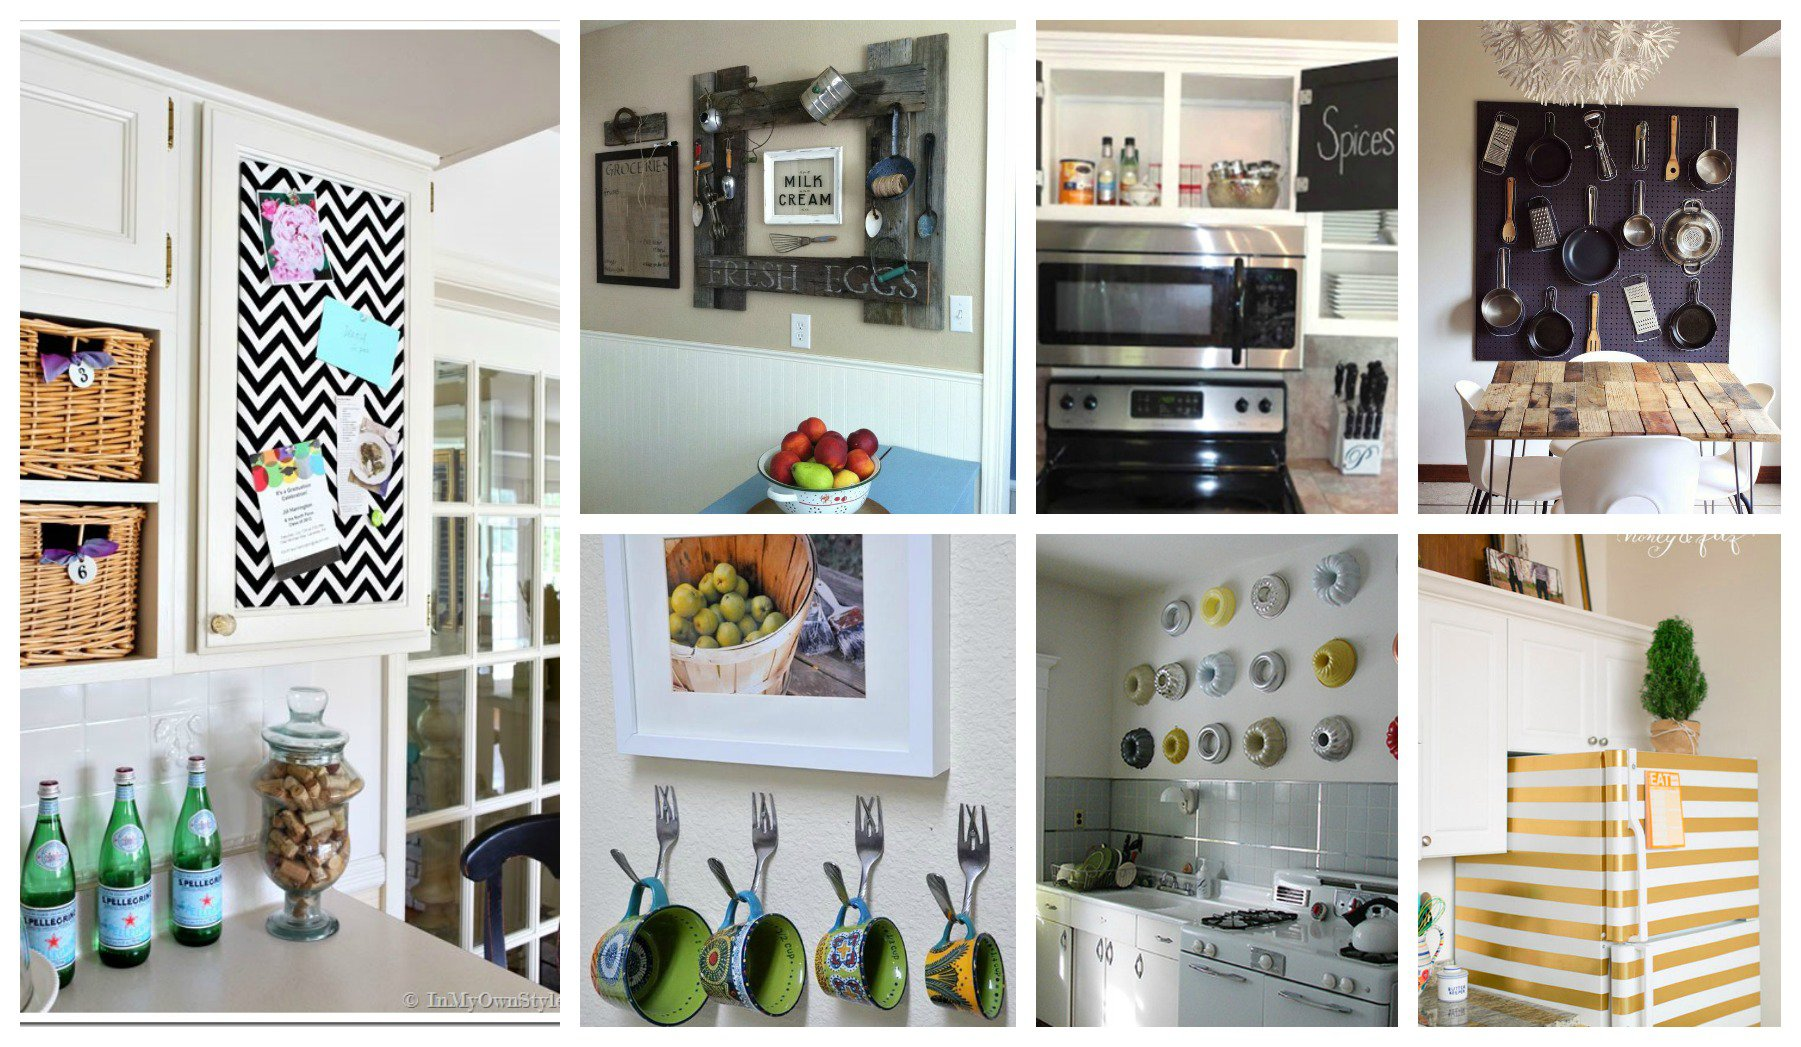 Awesome Diy Kitchen Decor Ideas That You Can Easily Make Diy Arts And Crafts